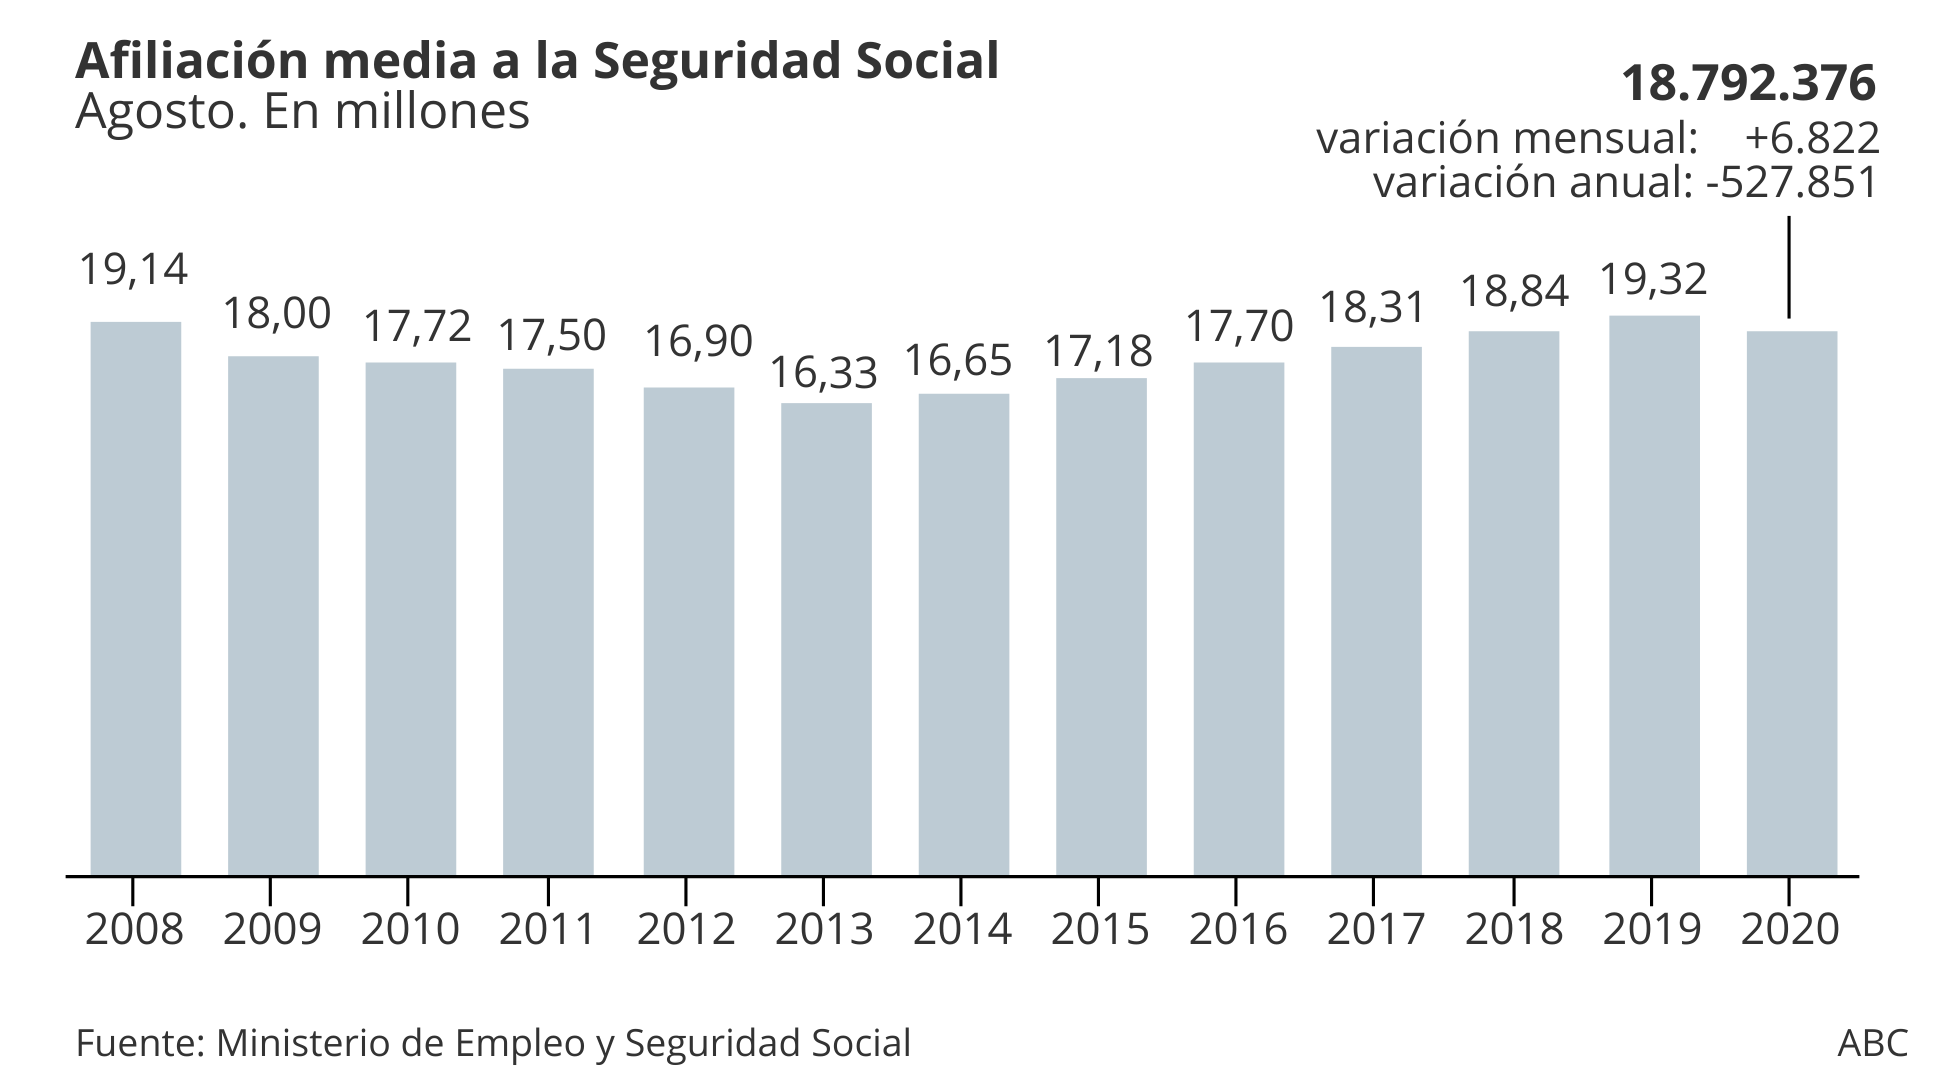 Average affiliation to Social Security in August